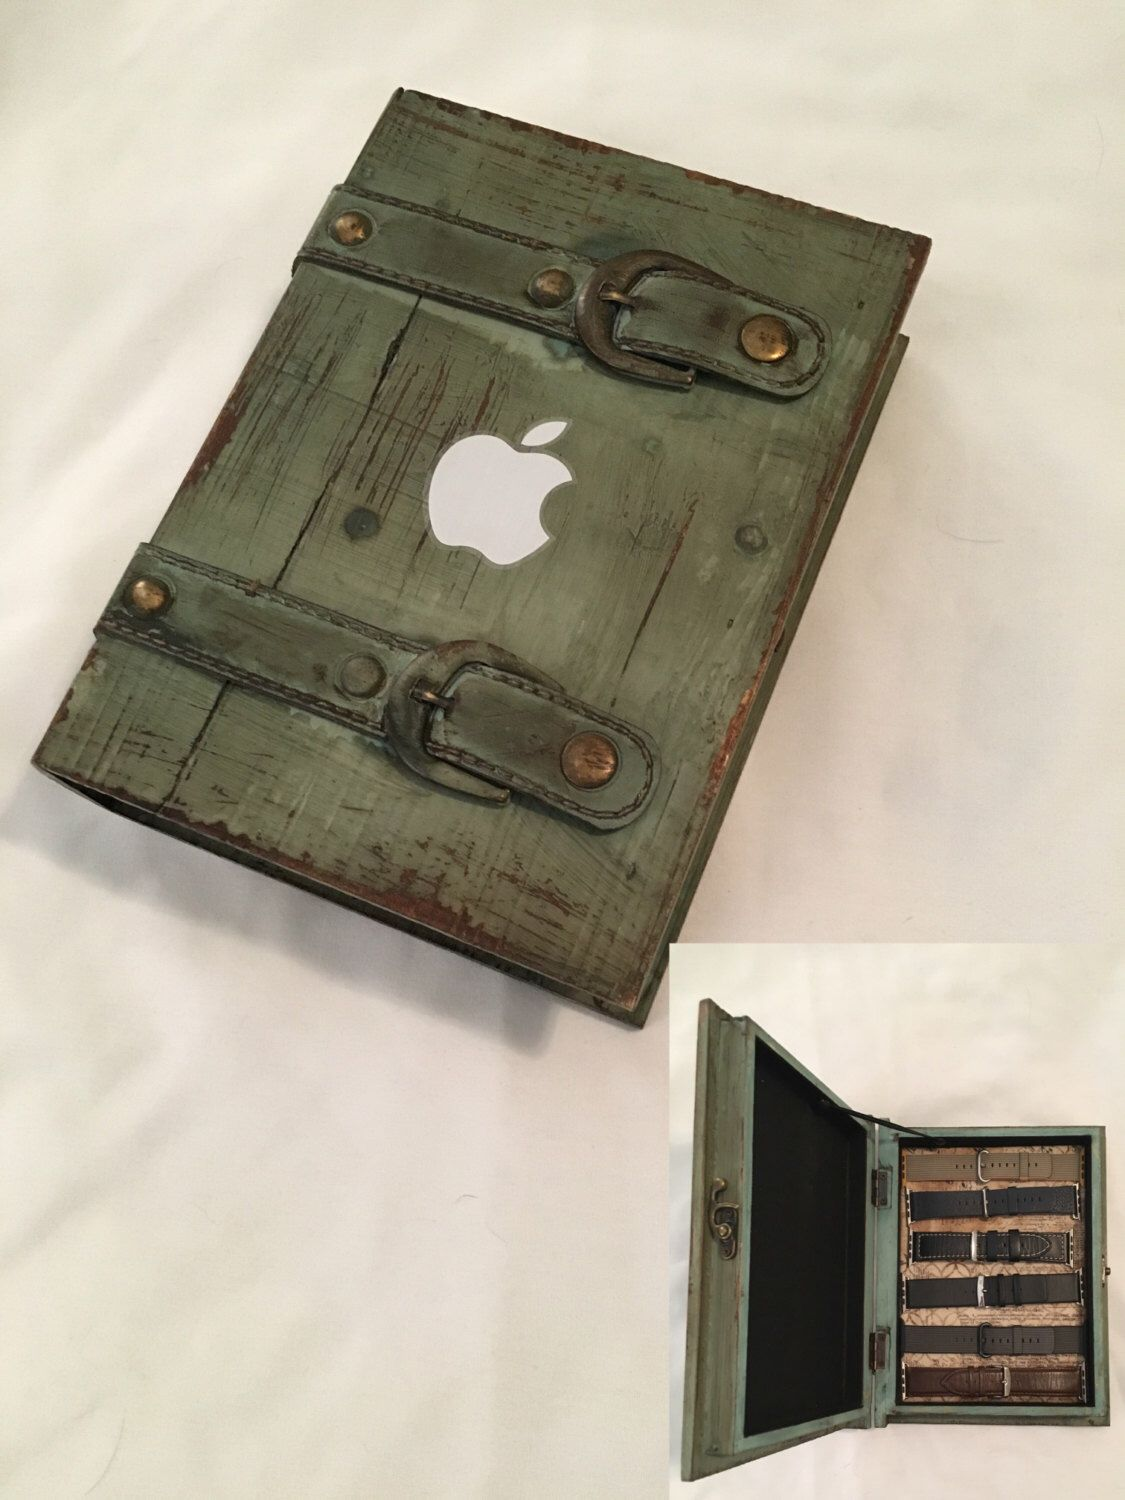 Apple Watch Band Storage Vintage Book By Applevalleywatchbox On Etsy Https Www Etsy Com Listing 474438685 Apple W Apple Watch Bands Watch Bands Apple Watch